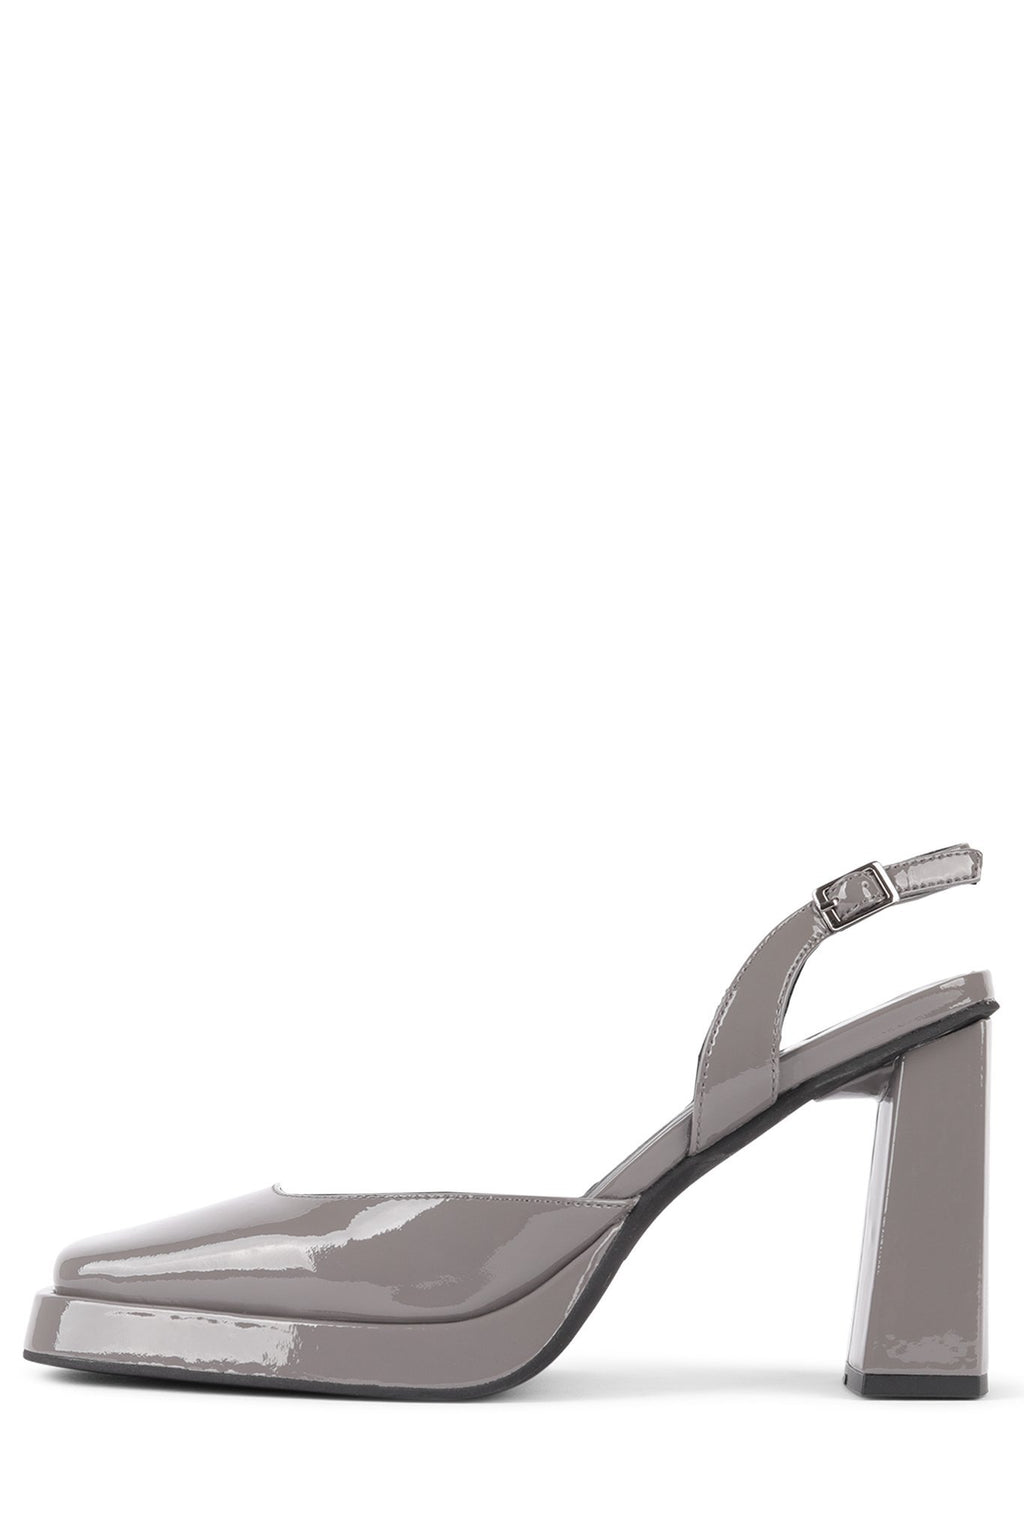 PUFF-PASS Platform Pump YYH Grey Patent 6